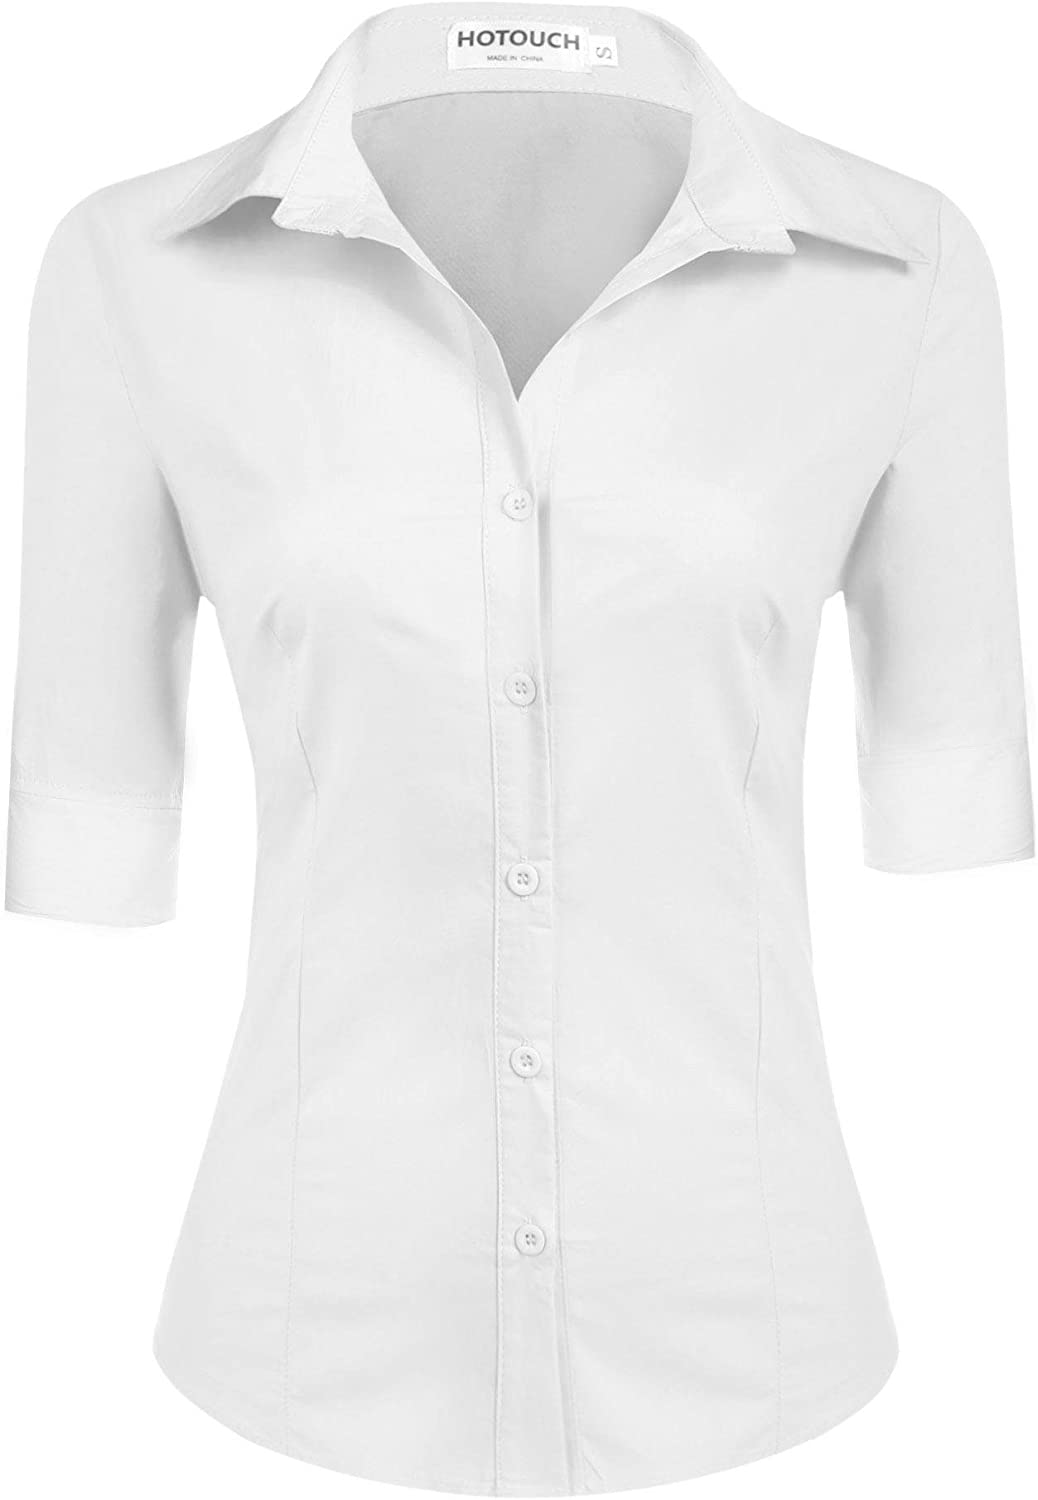 Hotouch Womens 3/4 Sleeve Basic Button Down Shirt Slim Fit Cotton Dress Shirts at  Women's Clothing store